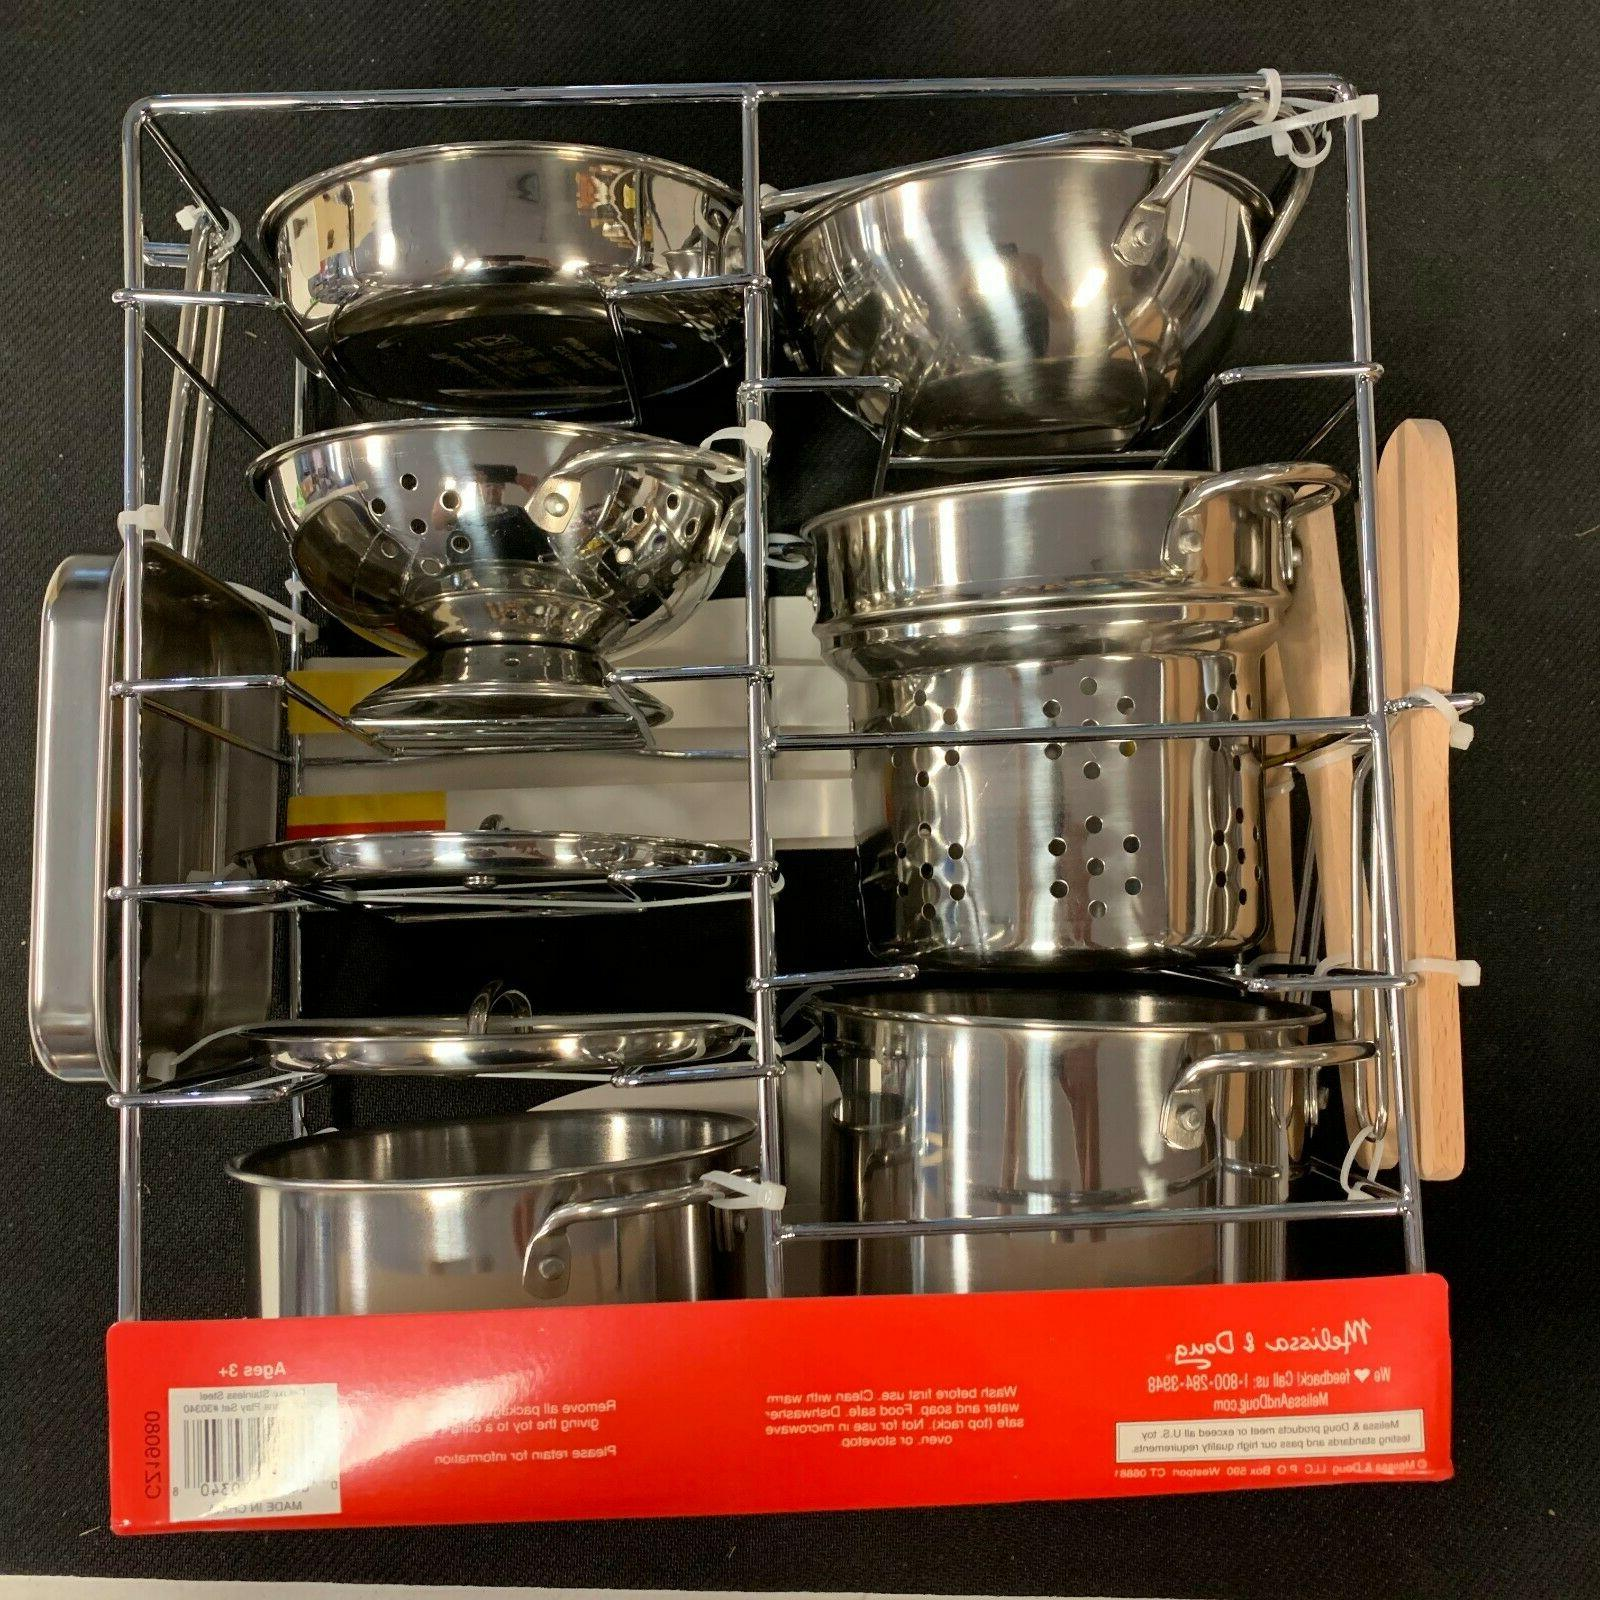 DELUXE & Doug Stainless Steel and Set